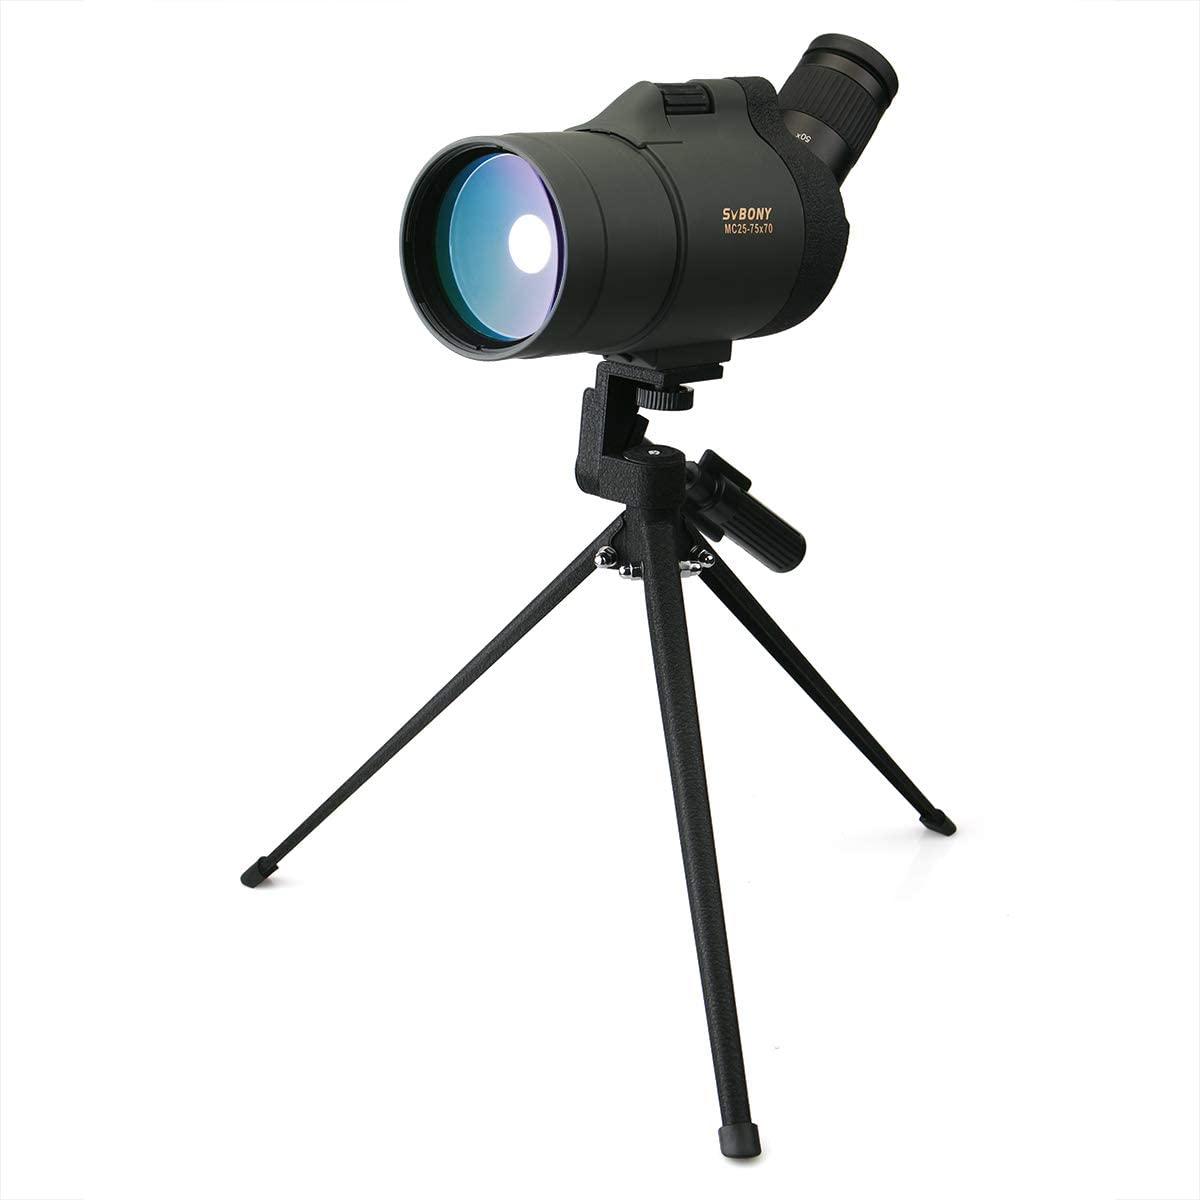 SVBONY SV41 Spotting Scope Mak with Tripod Waterproof 25-75×70 Mini Compact for Shooting Birdwatching Travel for Both Terrestrial and Astronomical Use